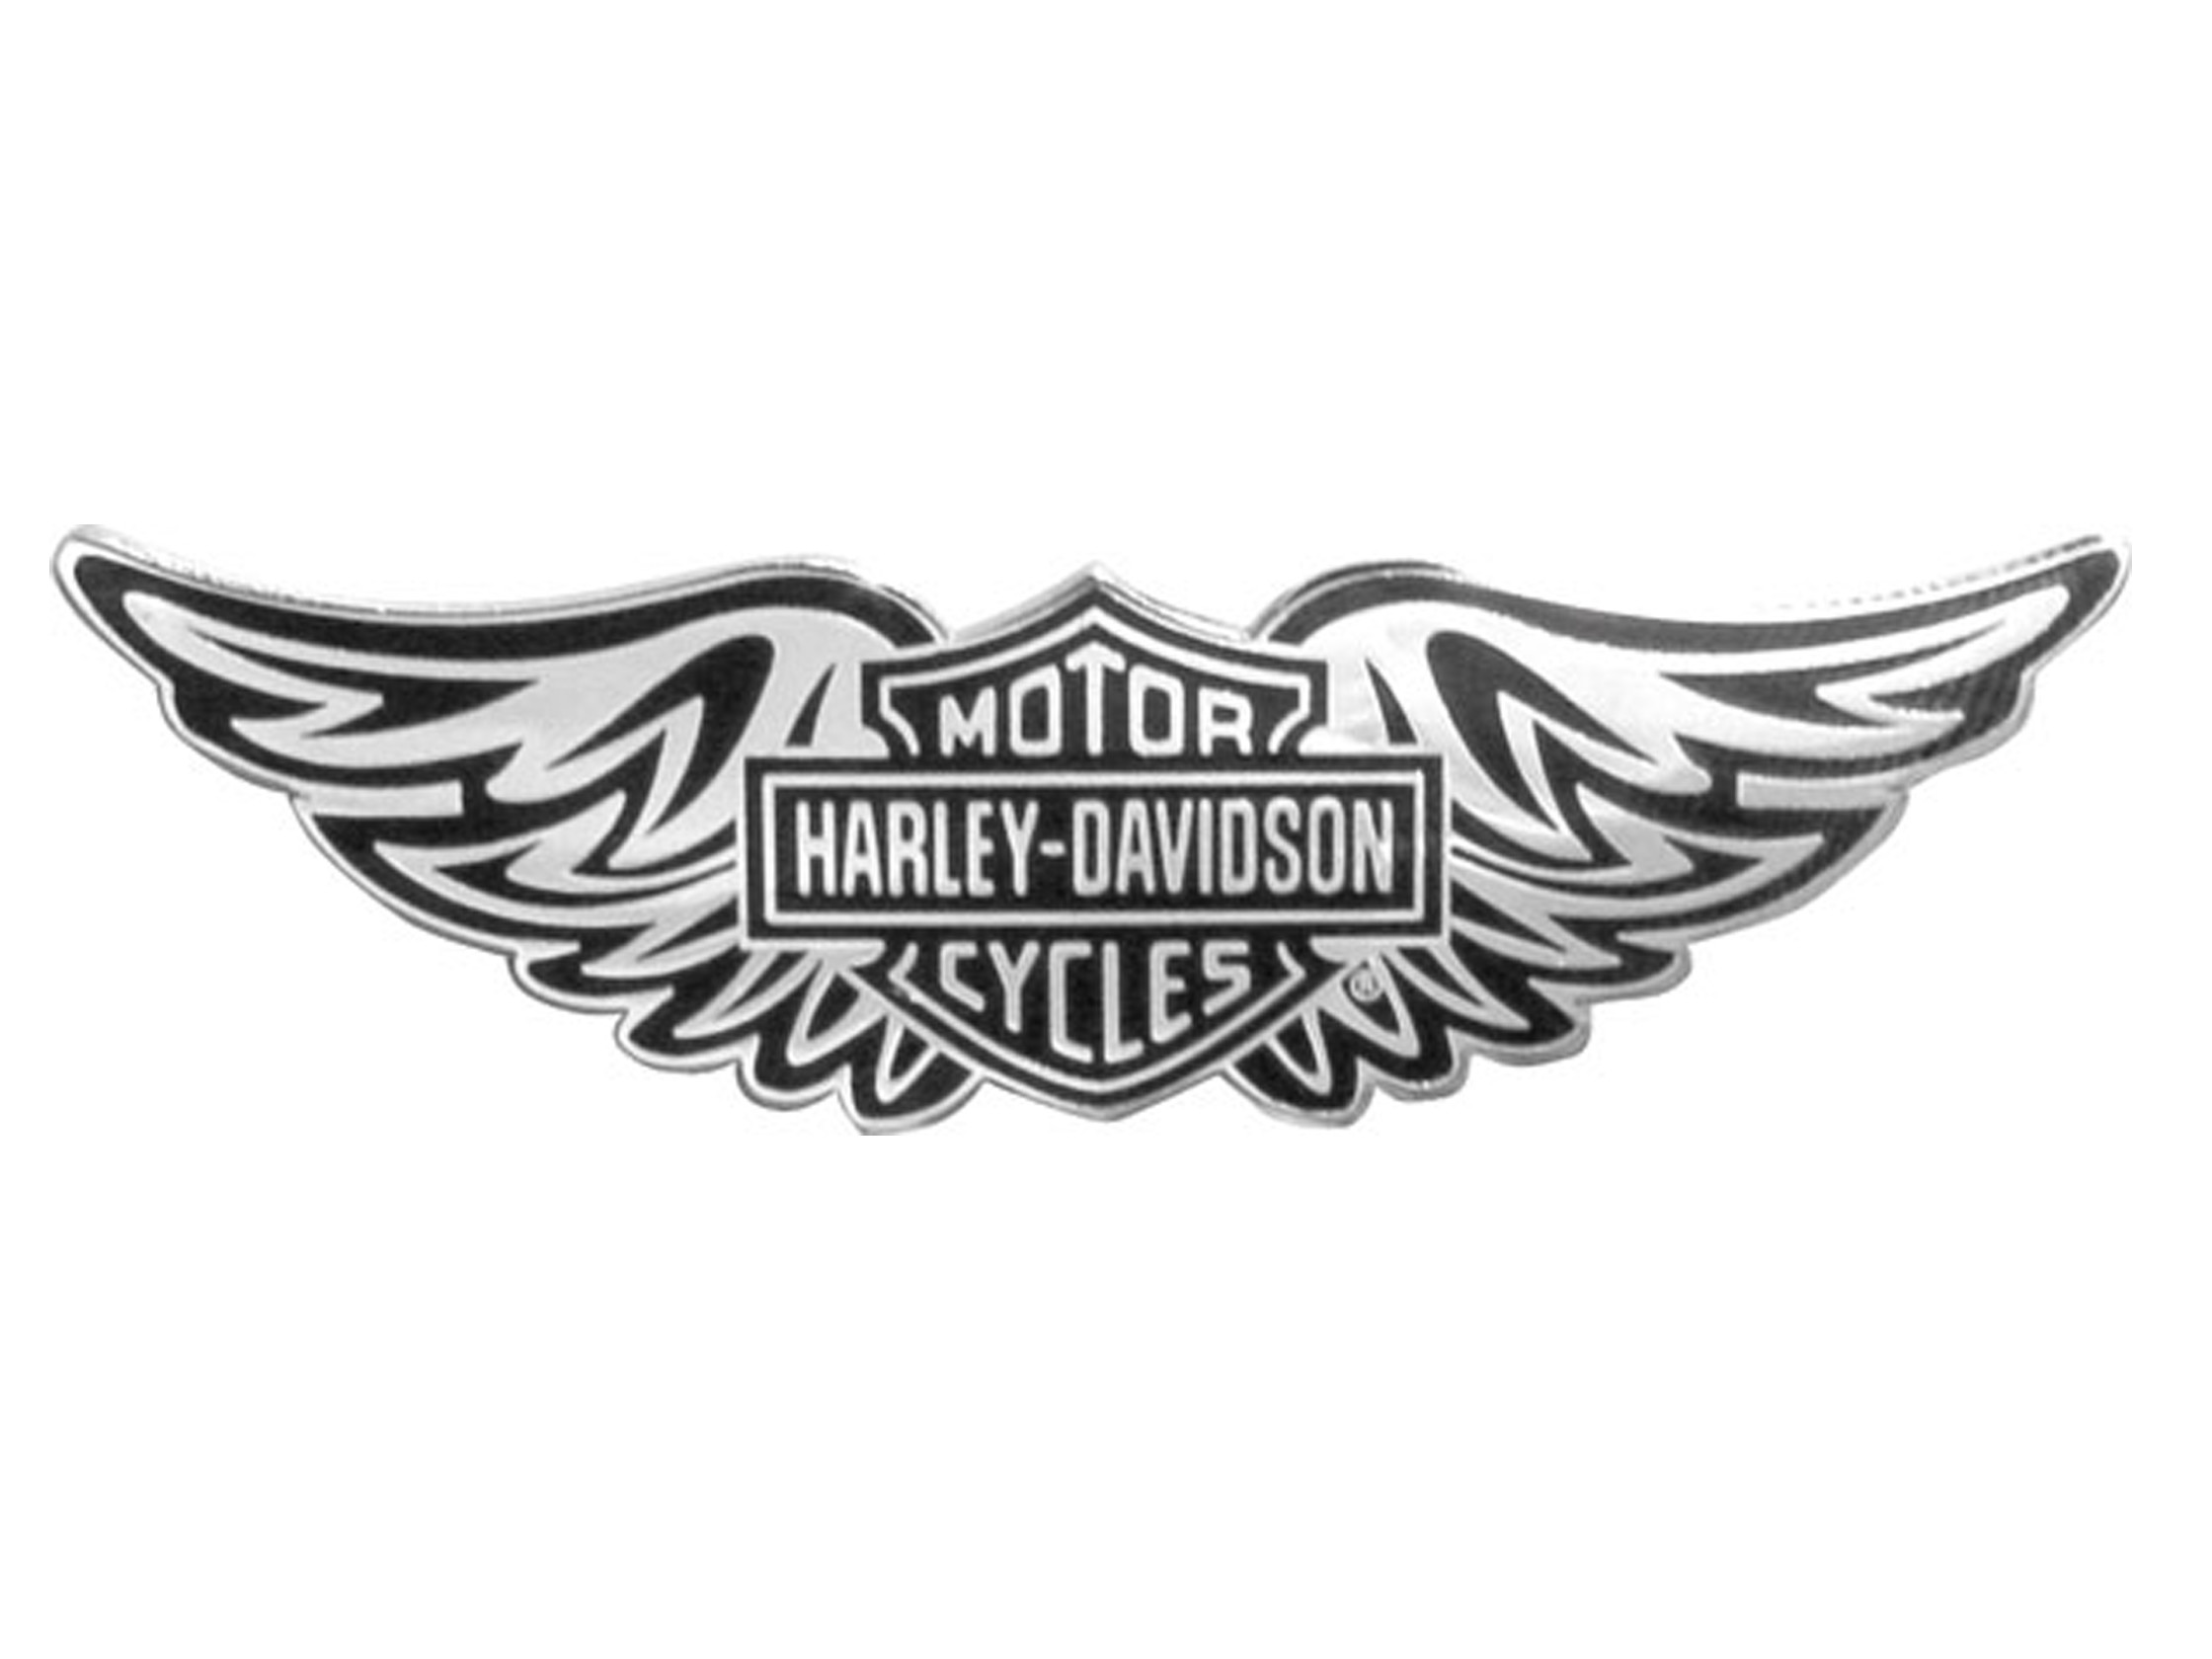 harley logo wallpapers download free images